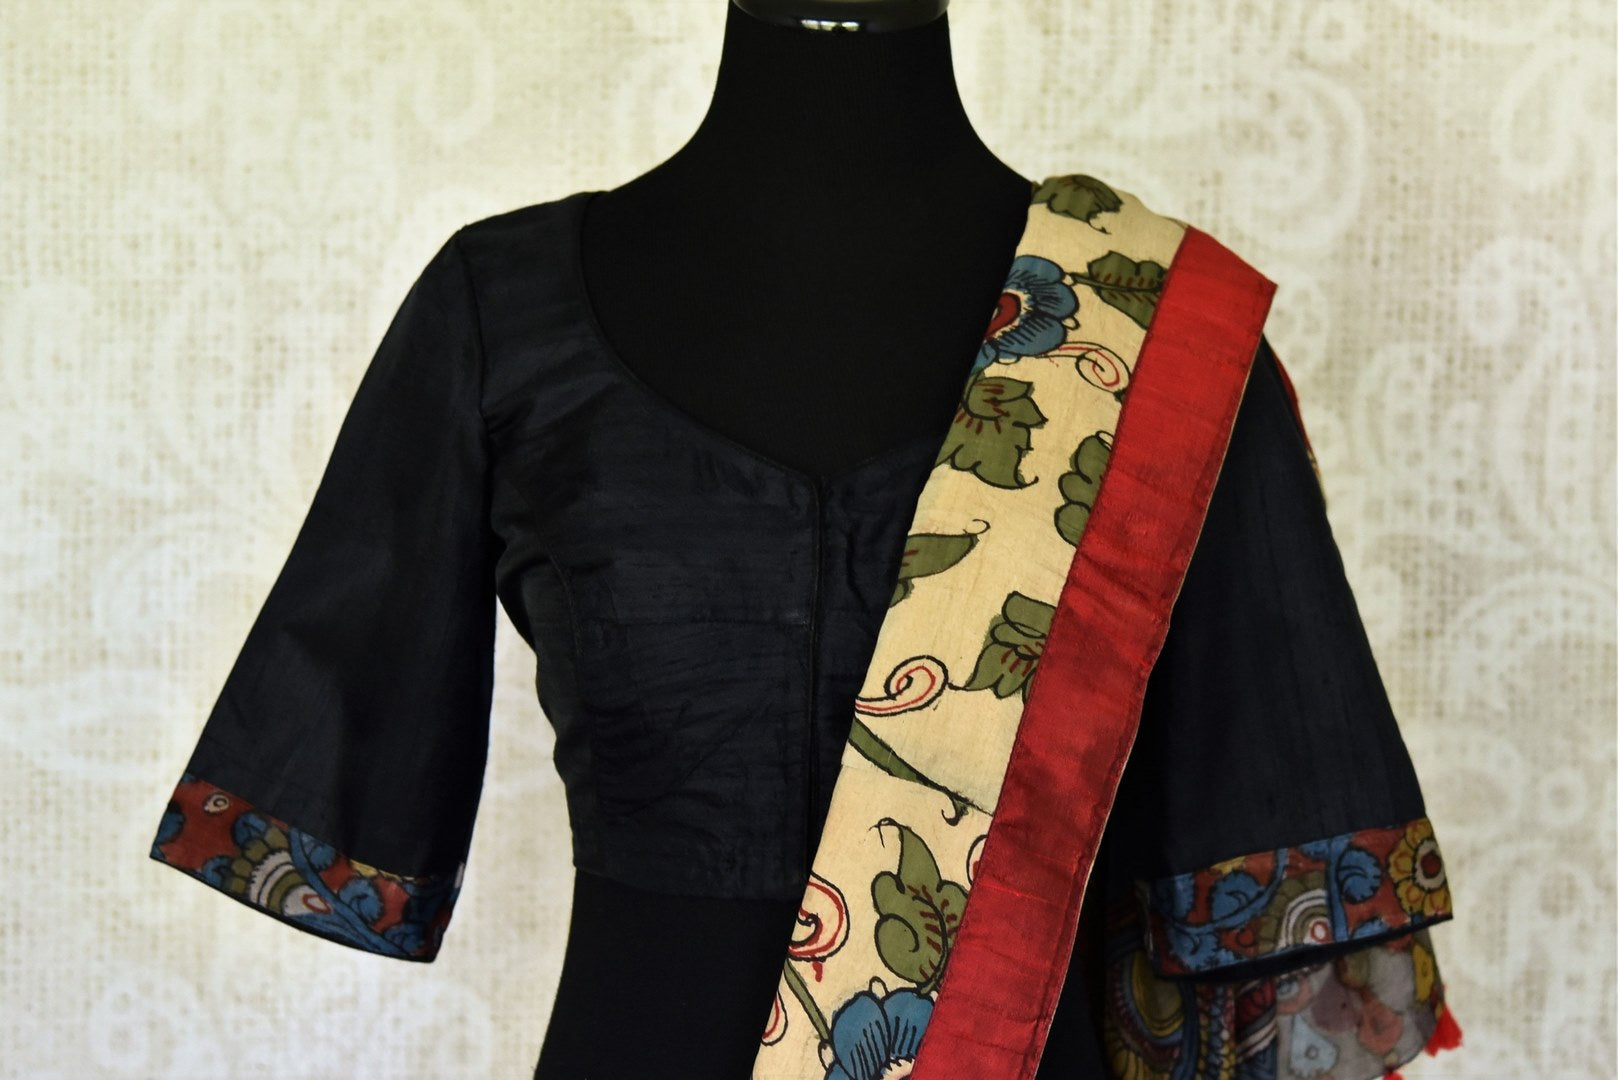 Buy graceful cream raw silk sari online in USA with hand painted Kalamkari border and black sari blouse. Elevate your traditional glam on weddings and special occasions with an exclusive range of handwoven sarees, designer saris especially for Indian women in USA at Pure Elegance Indian fashion store. Shop now.-blouse pallu